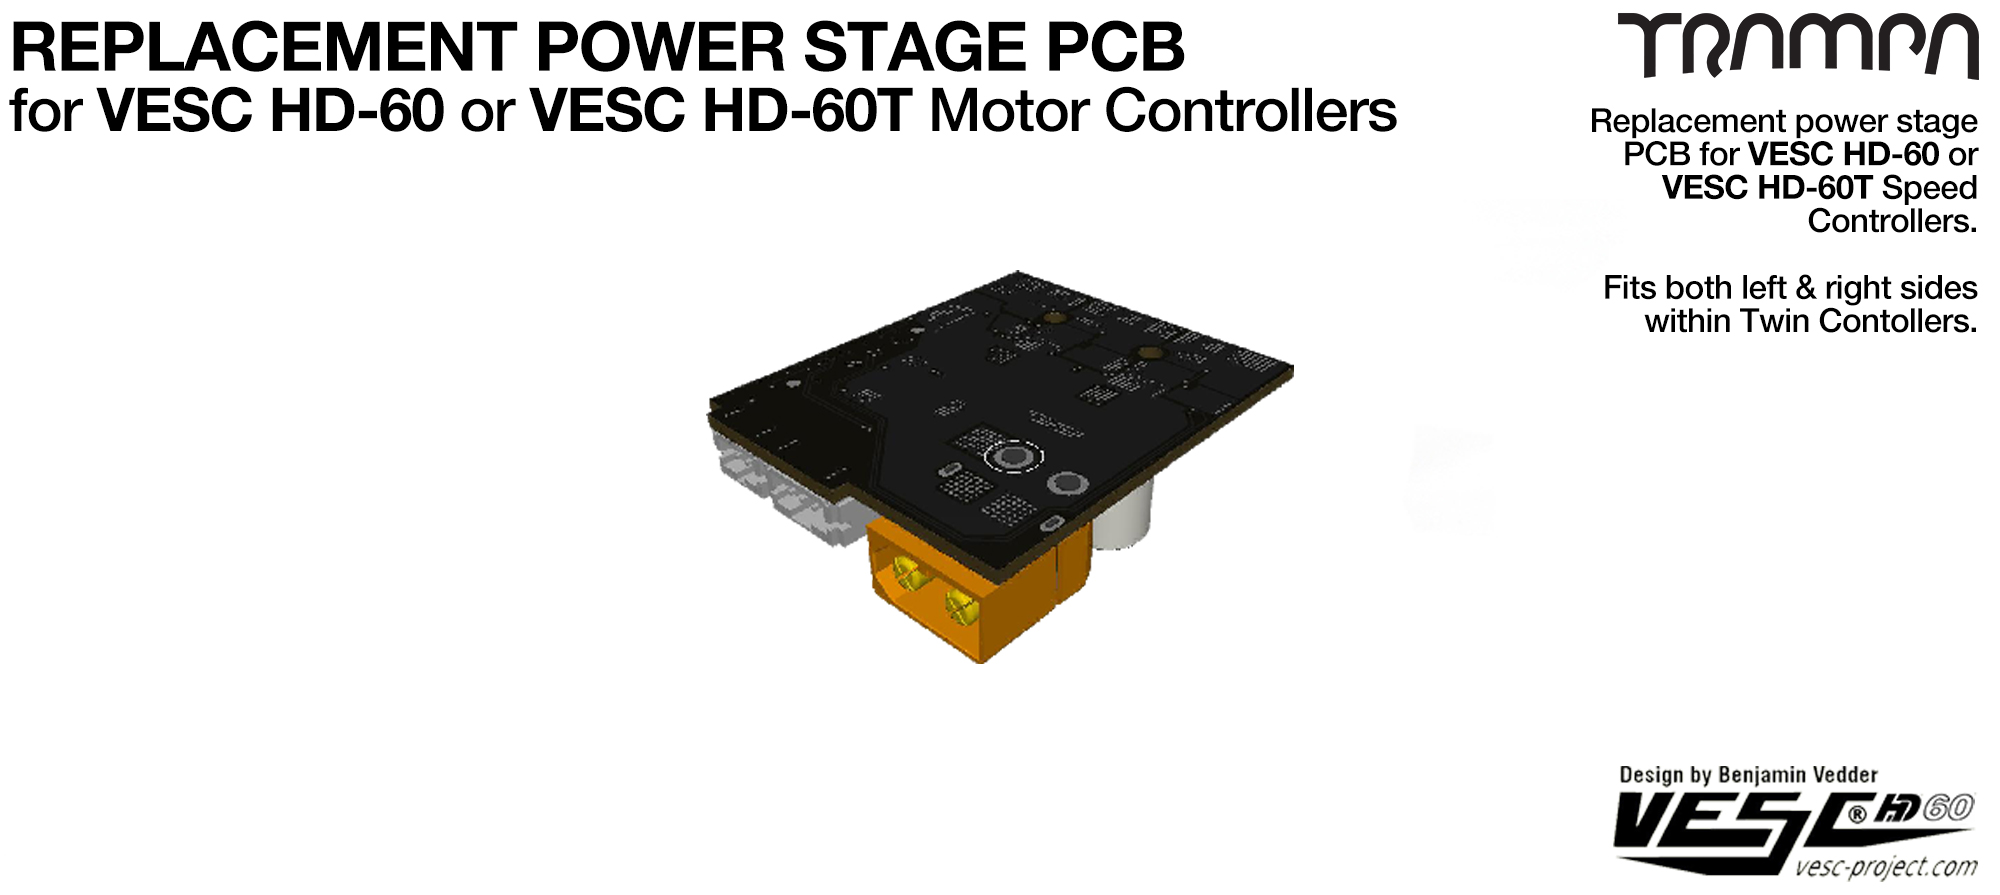 Replacement Power Stage PCB for 60V rated VESC HD motor controllers